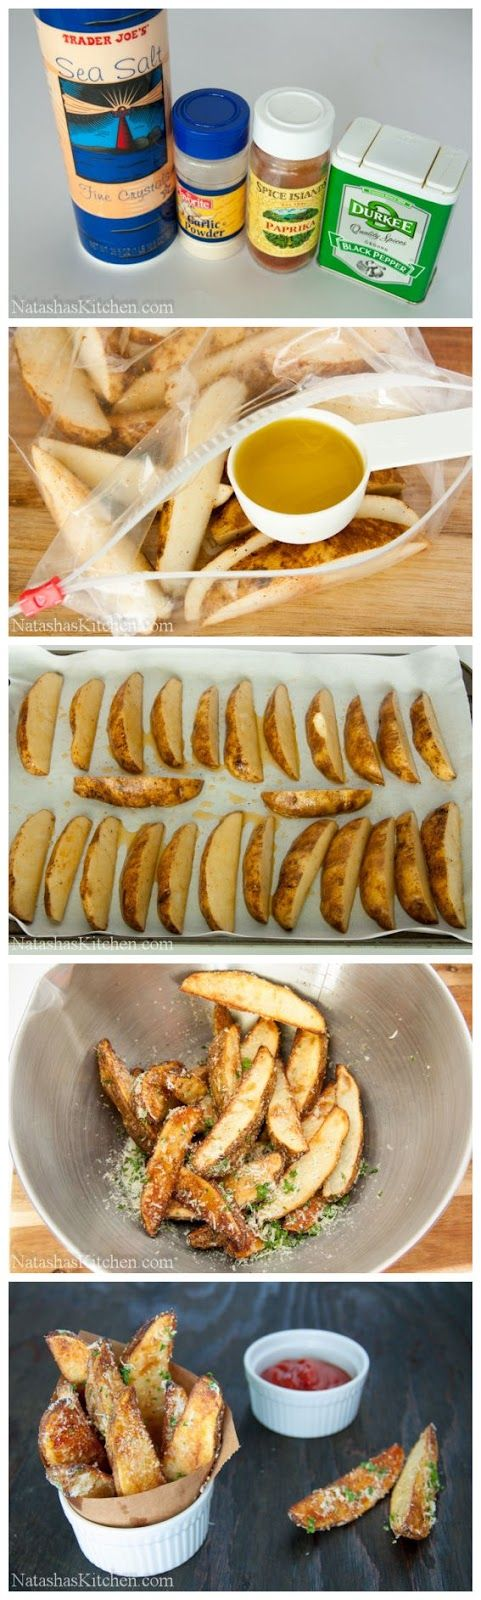 Oven Baked Potato Wedges to die for!